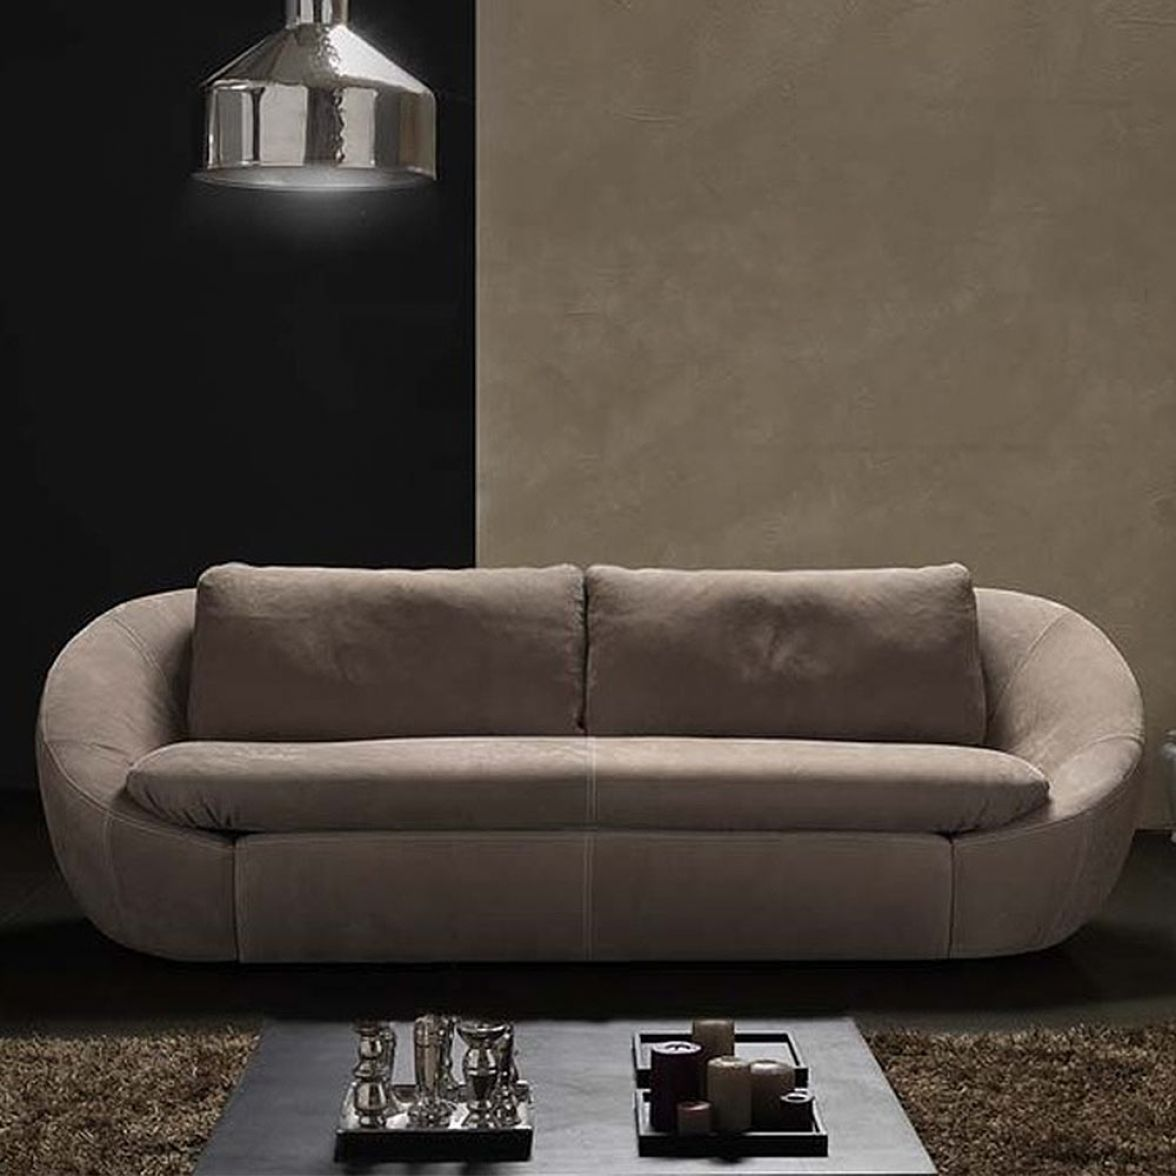 Dolly sofa фото цена